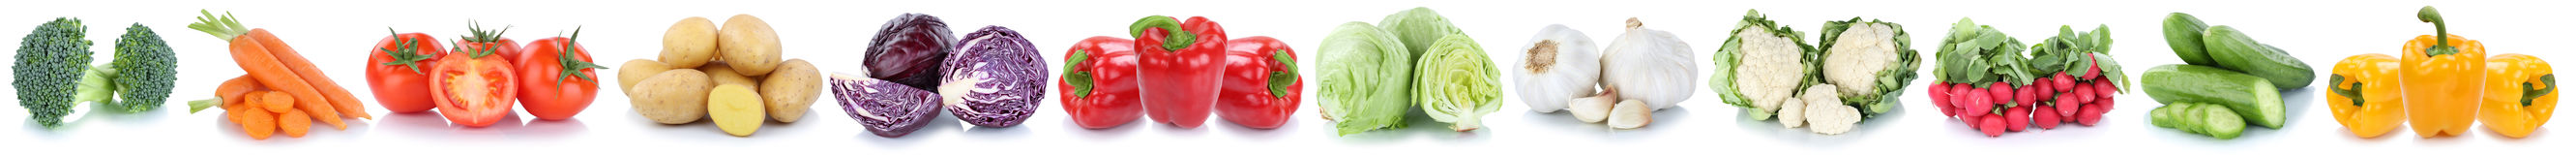 Vegetables carrots tomatoes bell pepper cucumber lettuce vegetab Stock Photography